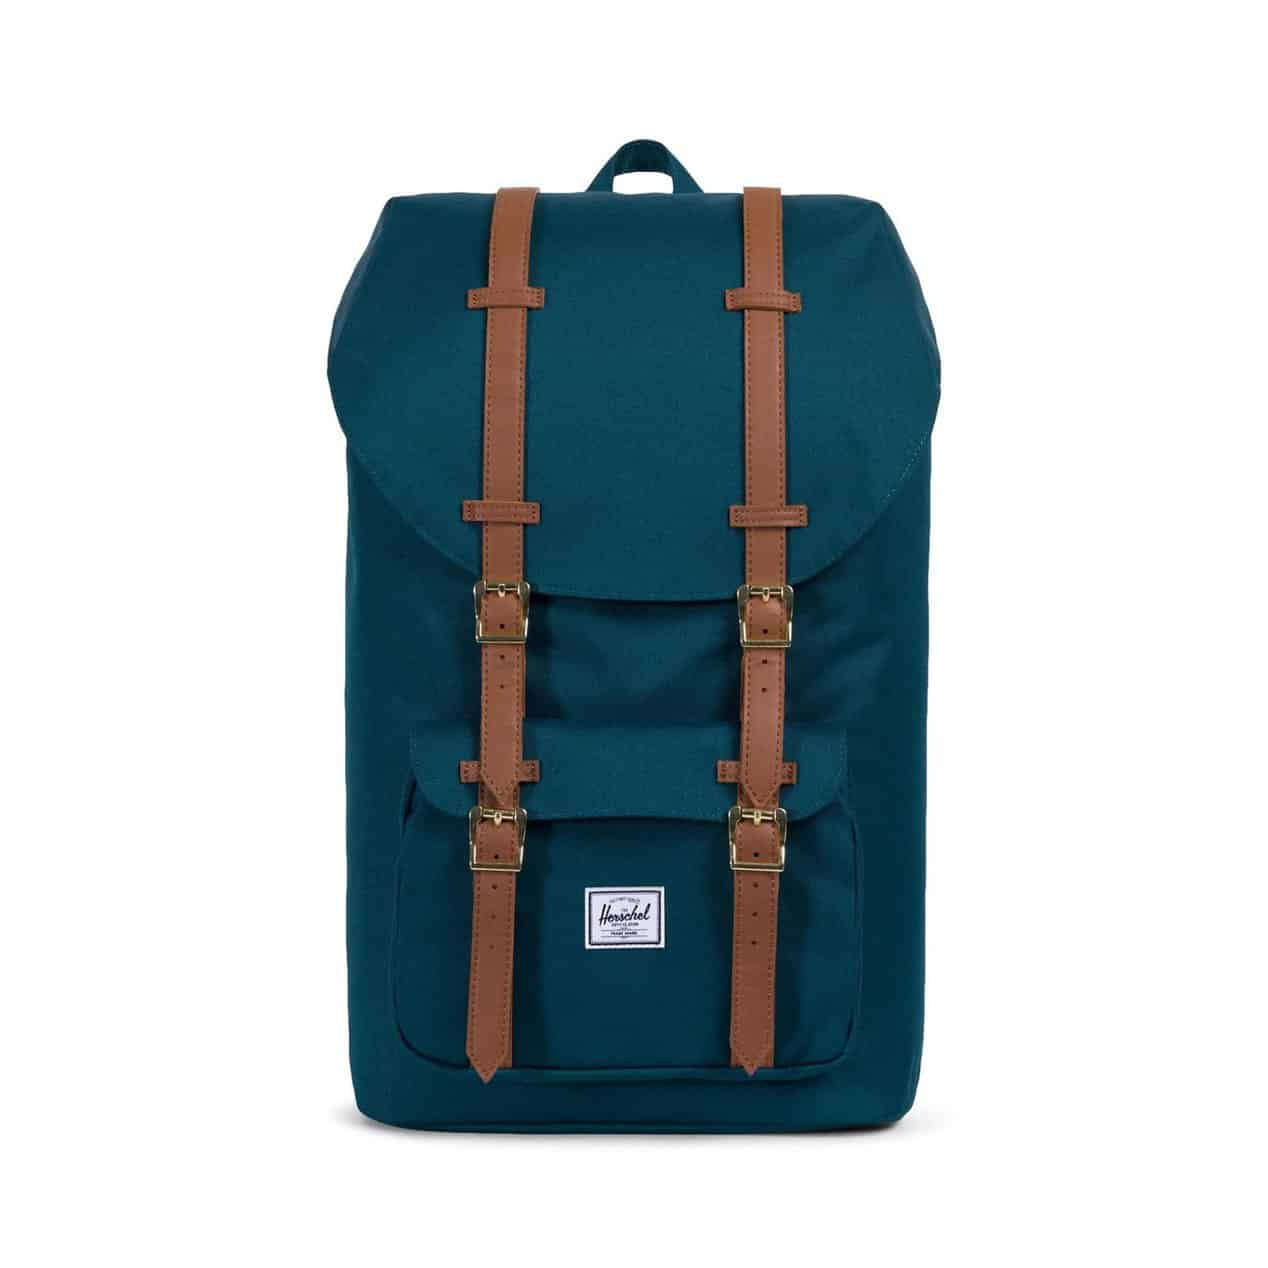 e7330416de0 Why the Little America Backpack is Herschel Supply Co. s Must-Have ...